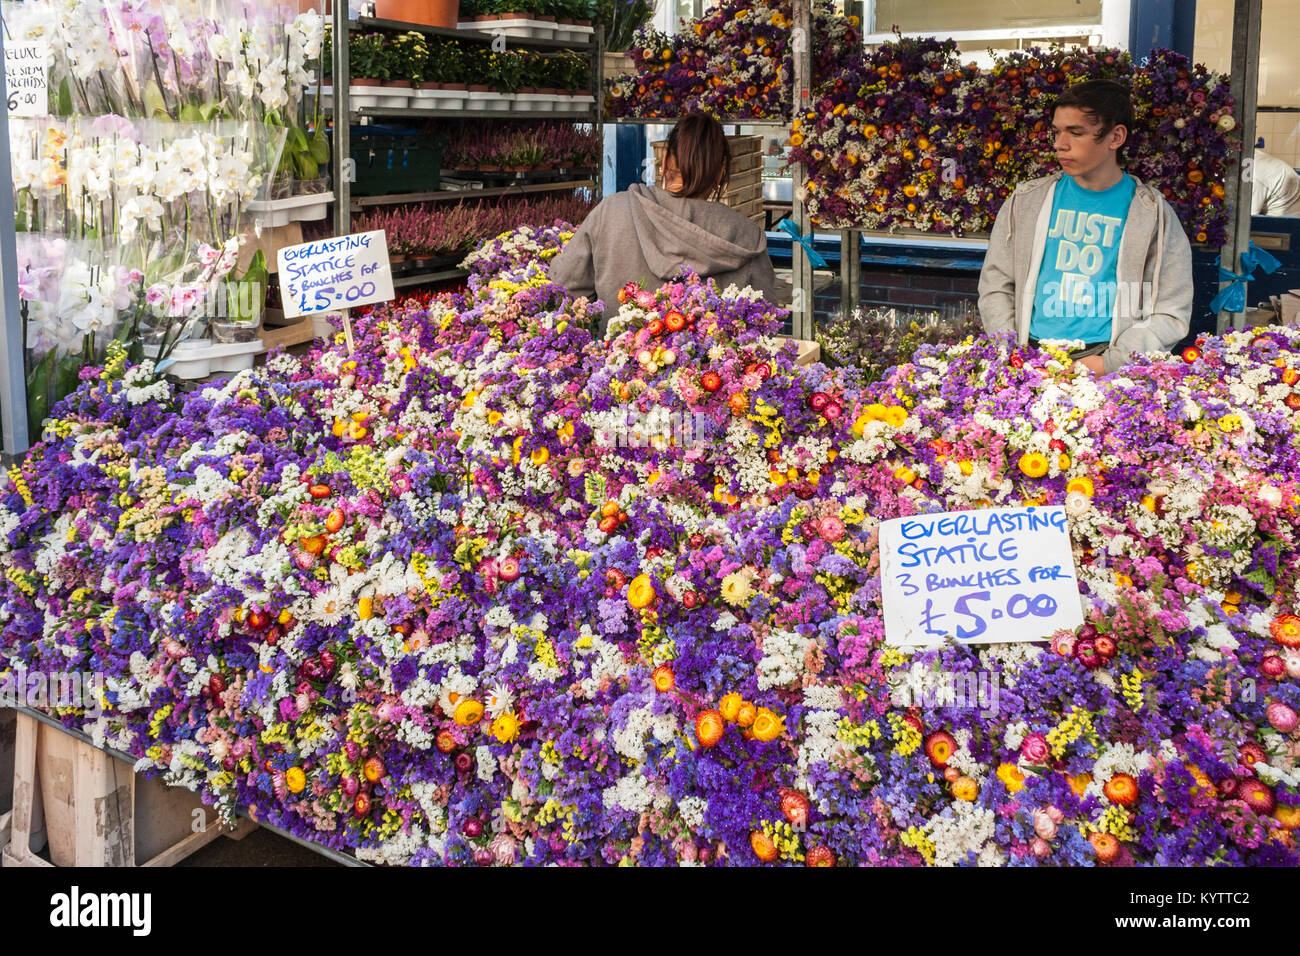 Columbia Road Flower Market stall with traders selling everlasting statice - Stock Image